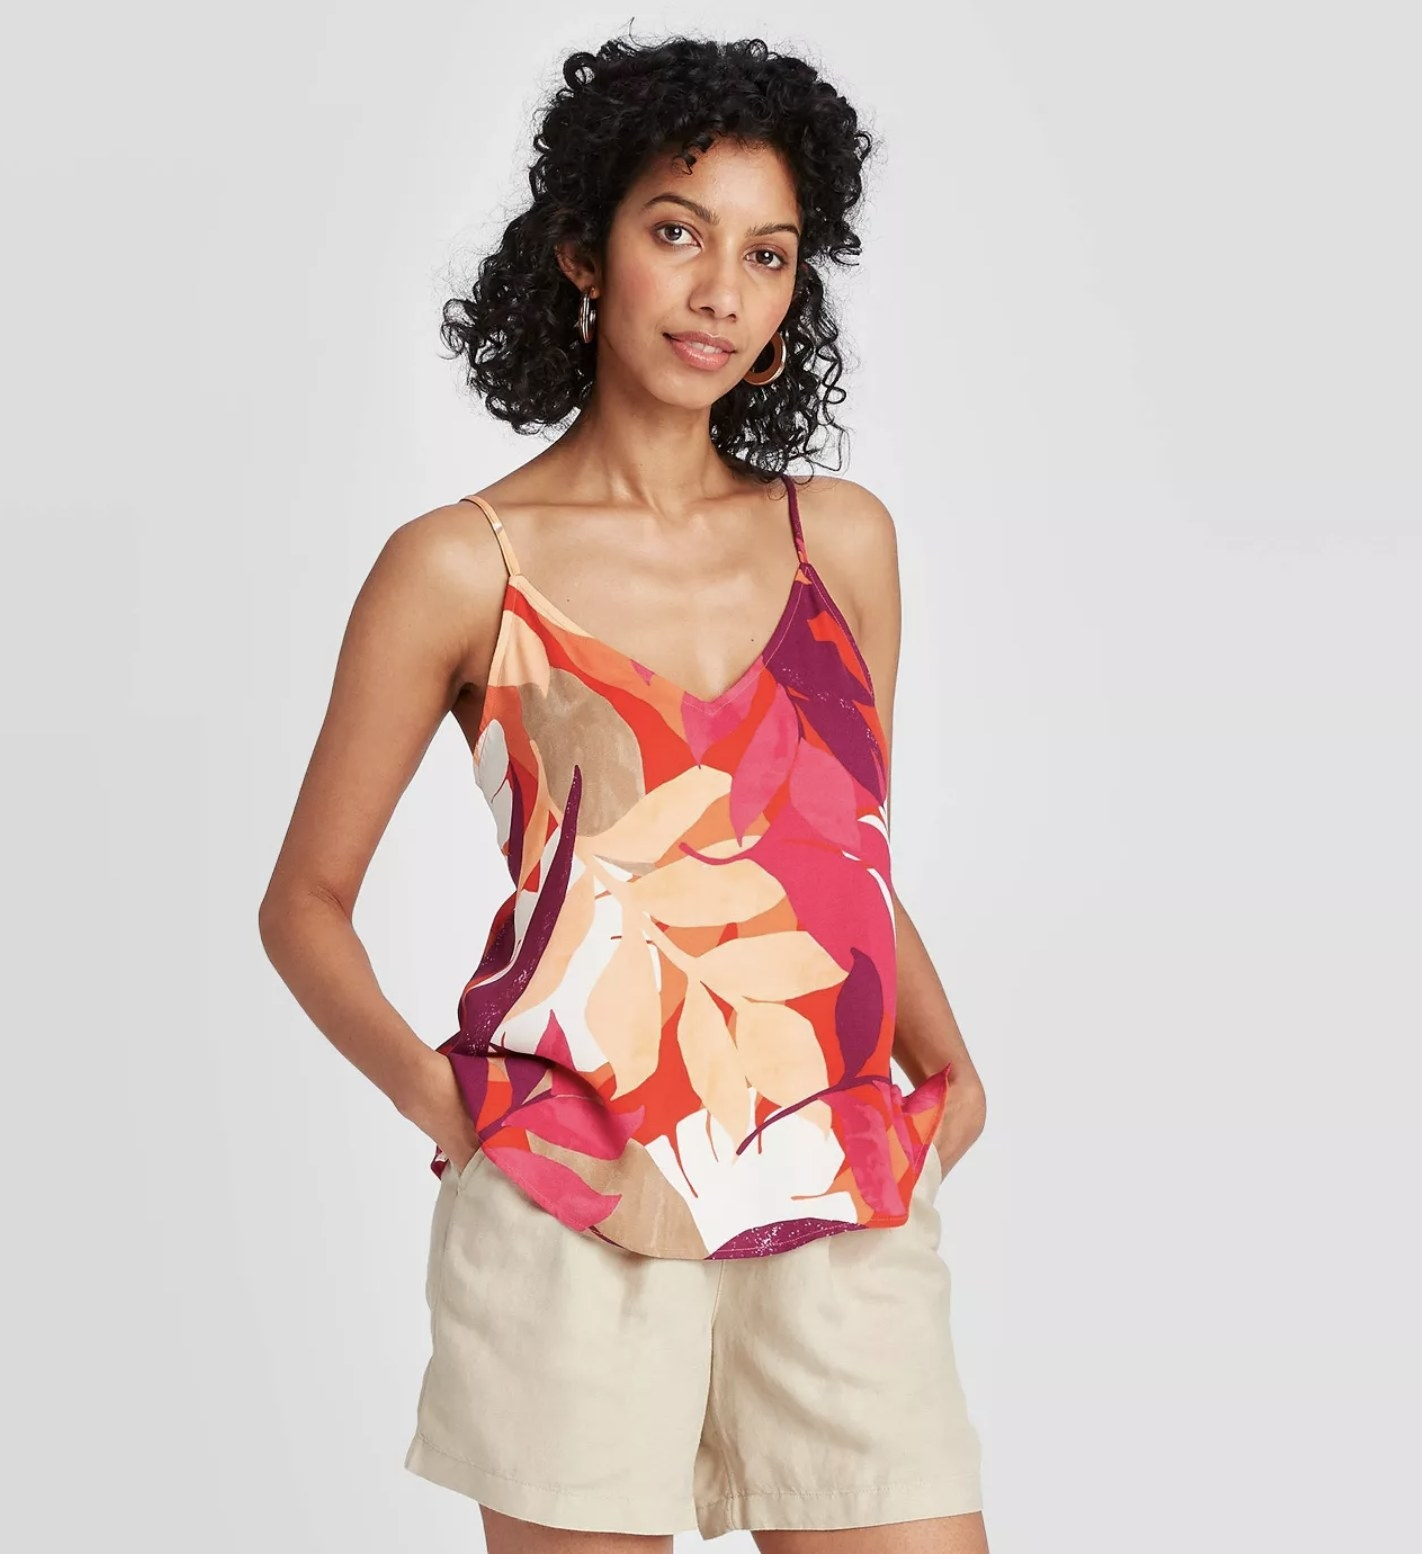 Model wearing the leaf-patterned, orange and pink, spaghetti strap tank